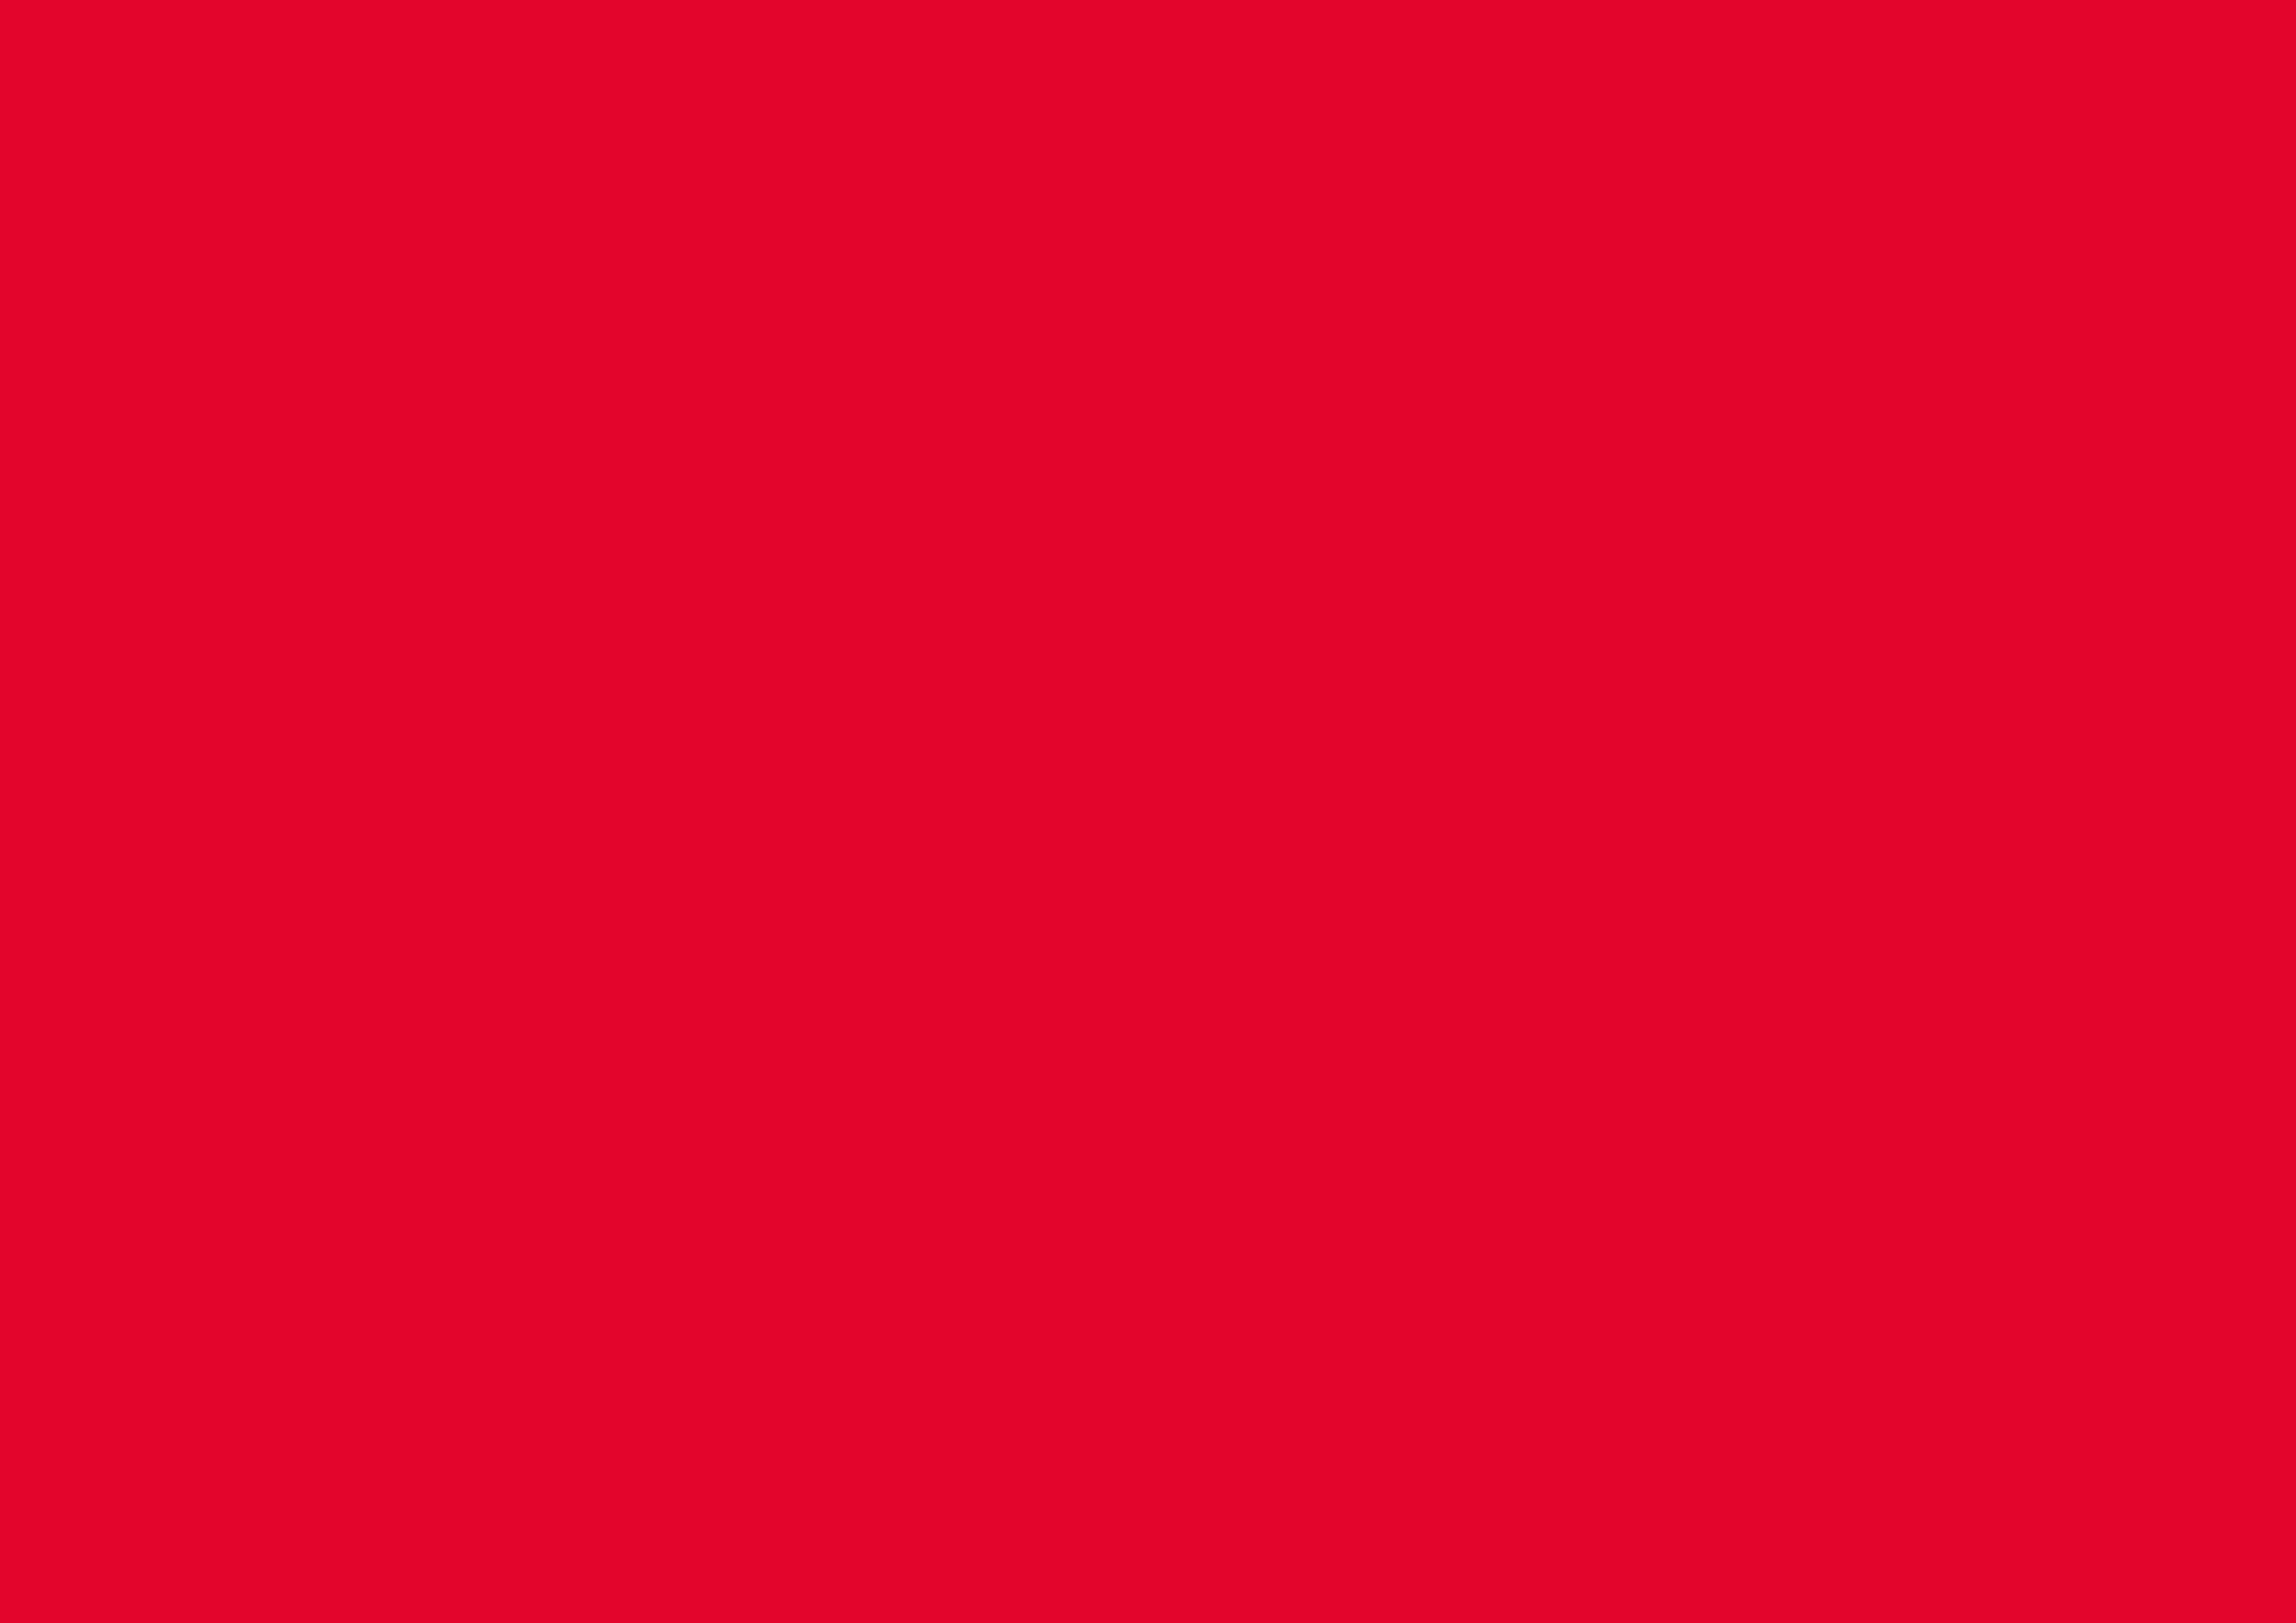 3508x2480 Medium Candy Apple Red Solid Color Background